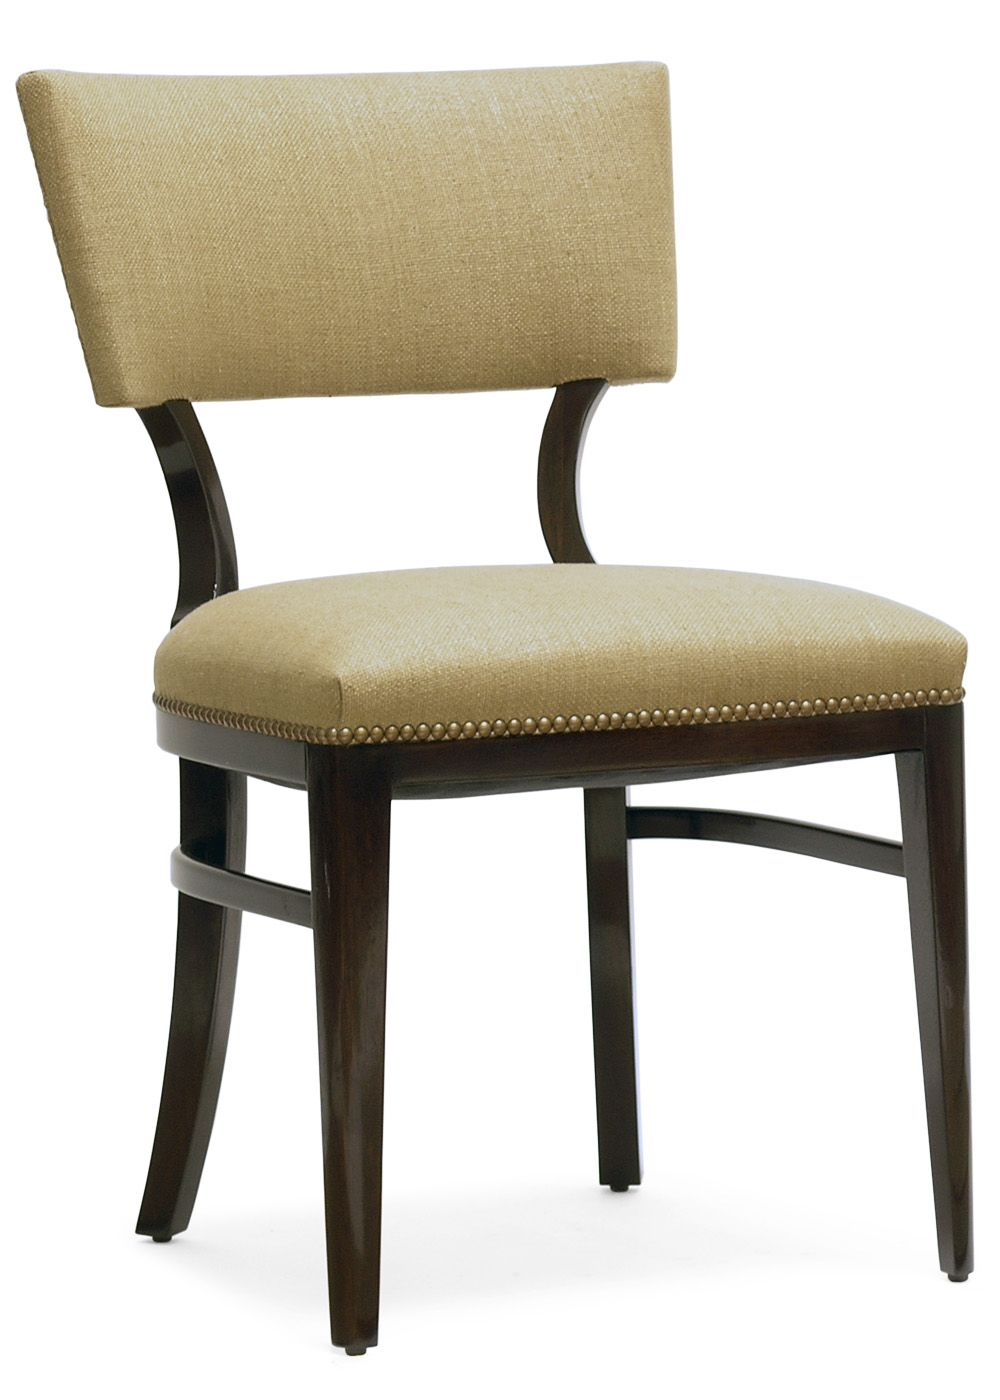 DeSoto Side Chair GD1046 S By Gerard